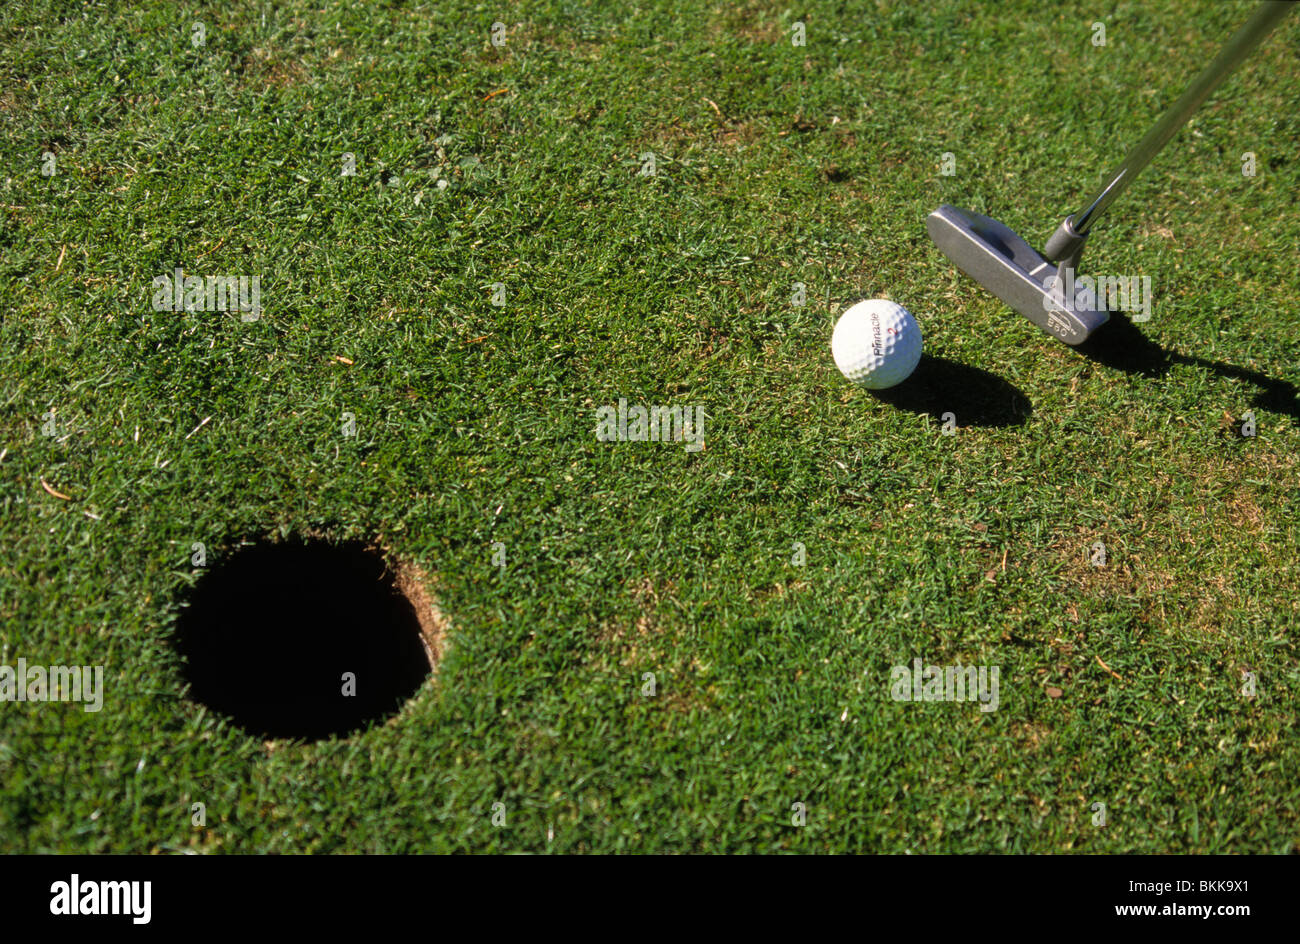 Person playing golf and putting a ball close up elevated view - Stock Image